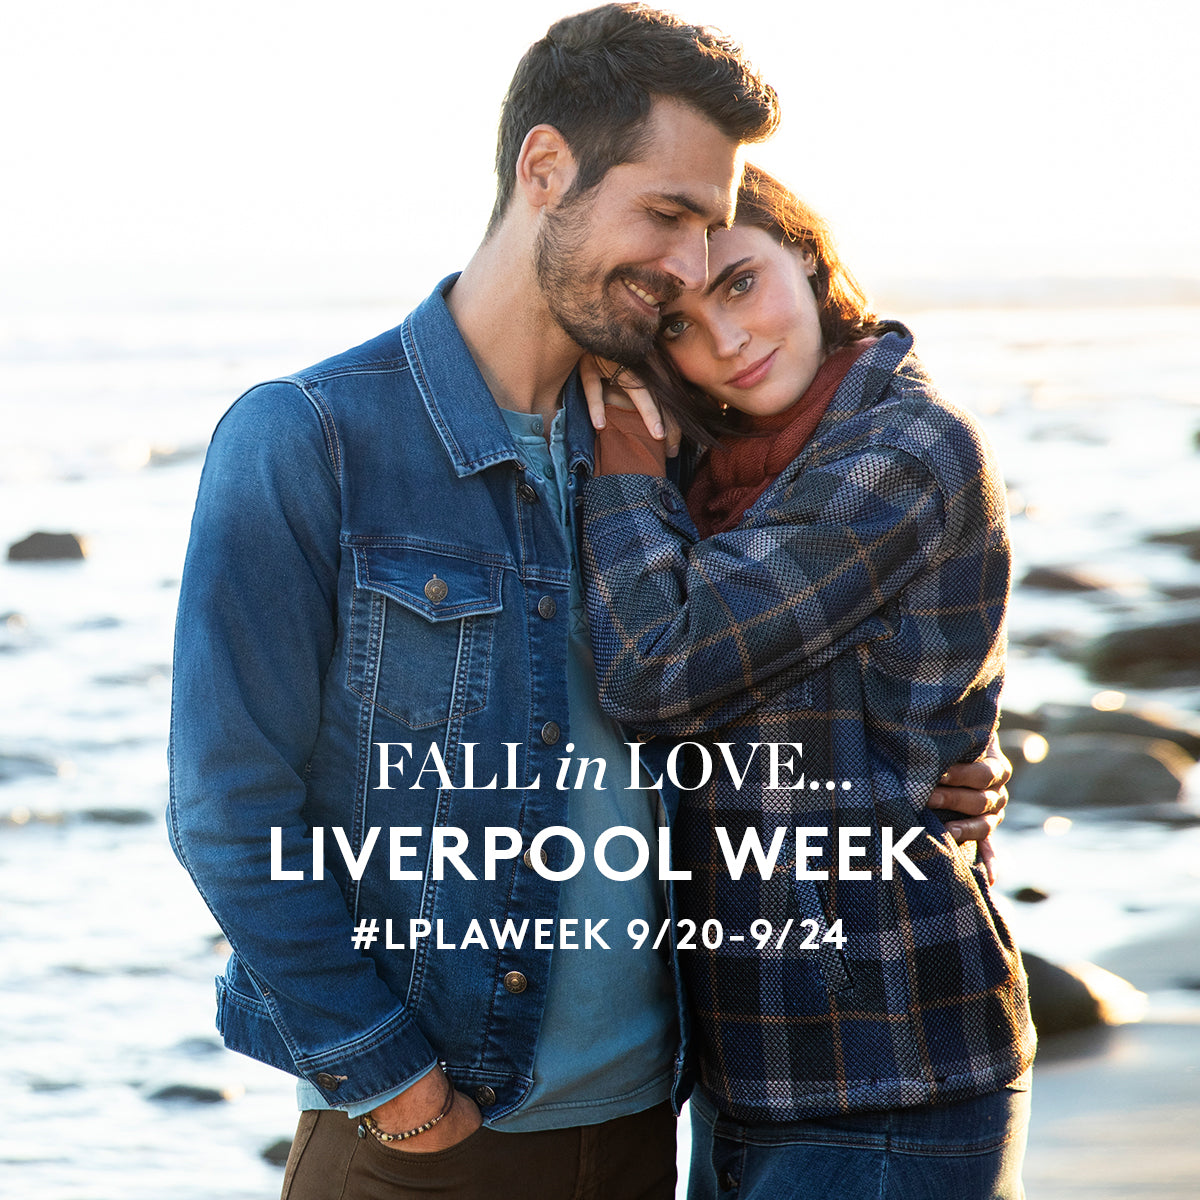 FALL IN LOVE: Liverpool Week 9/20 to 9/24